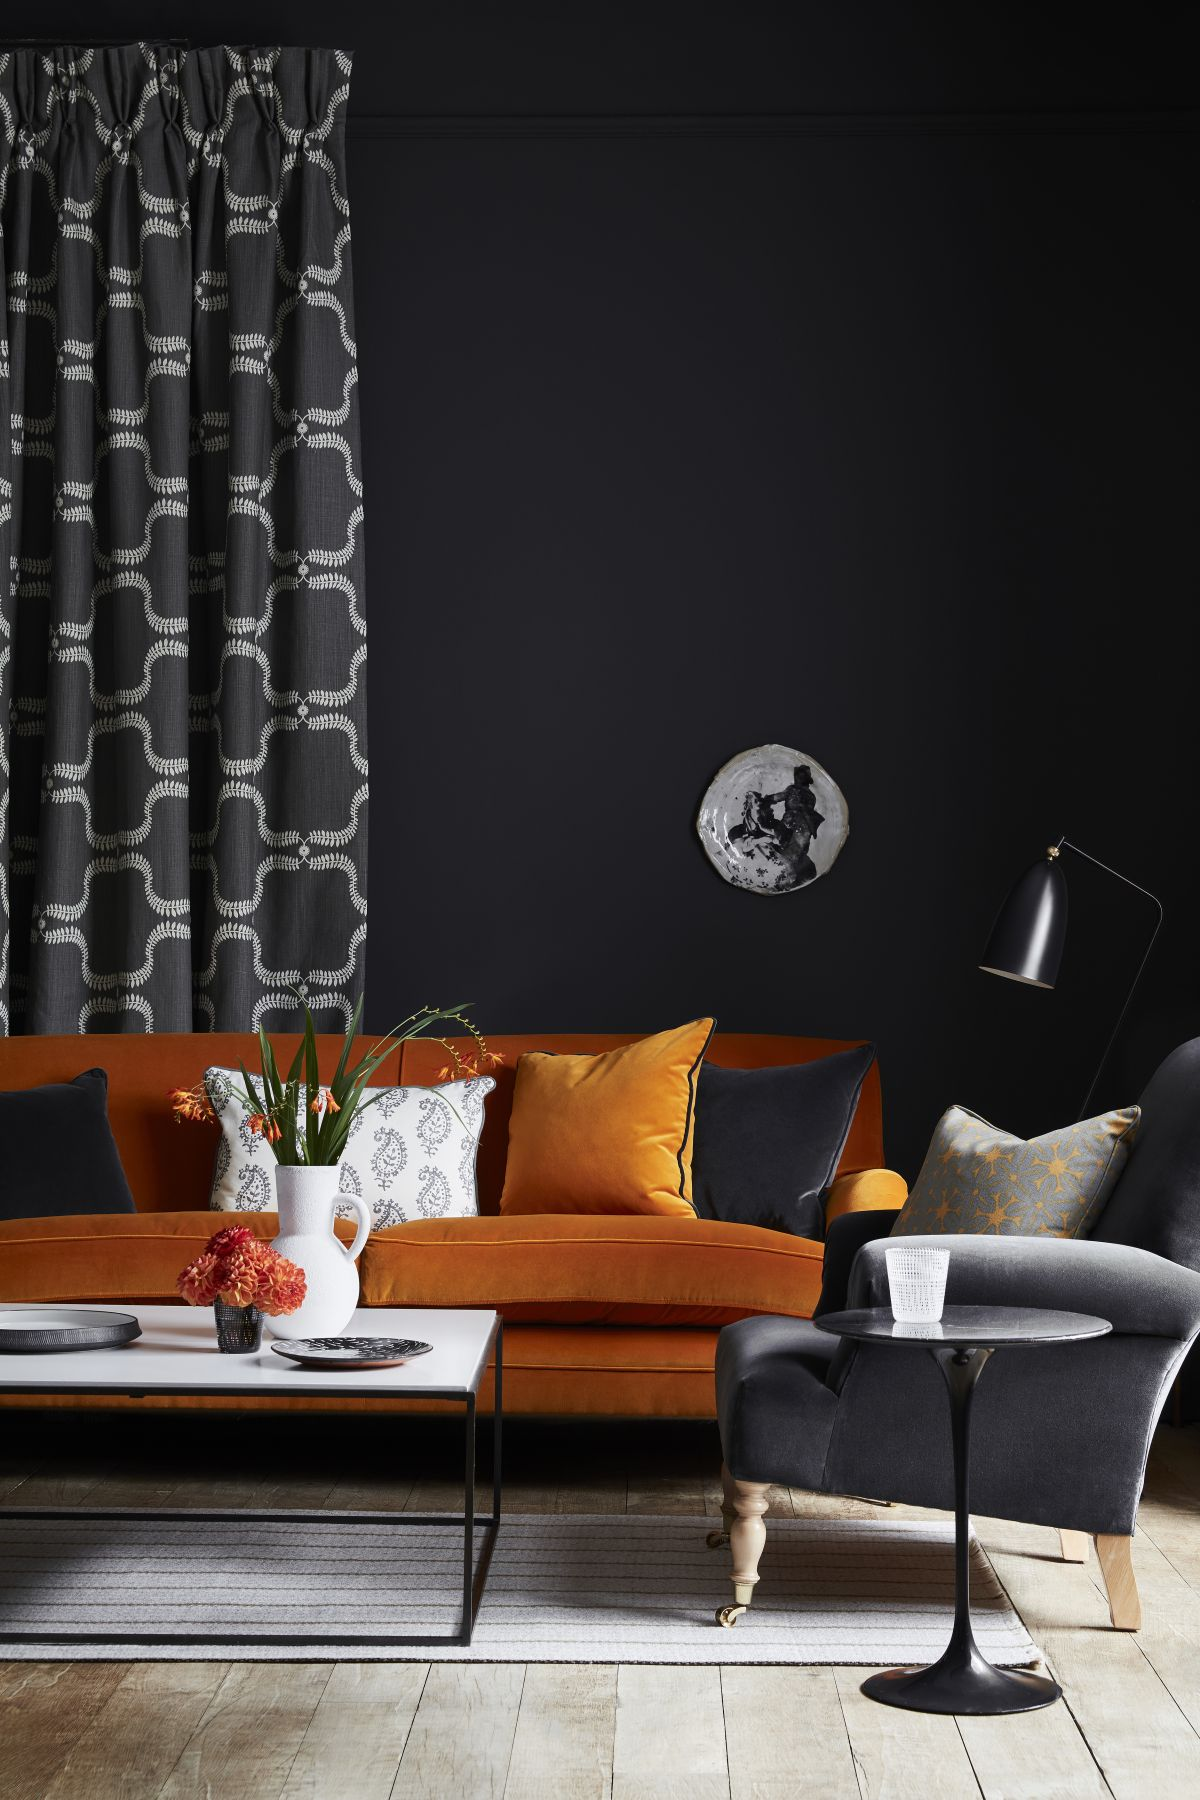 Groovy Grey Living Room Ideas 22 Gorgeous Ways To Inspire Your Ocoug Best Dining Table And Chair Ideas Images Ocougorg